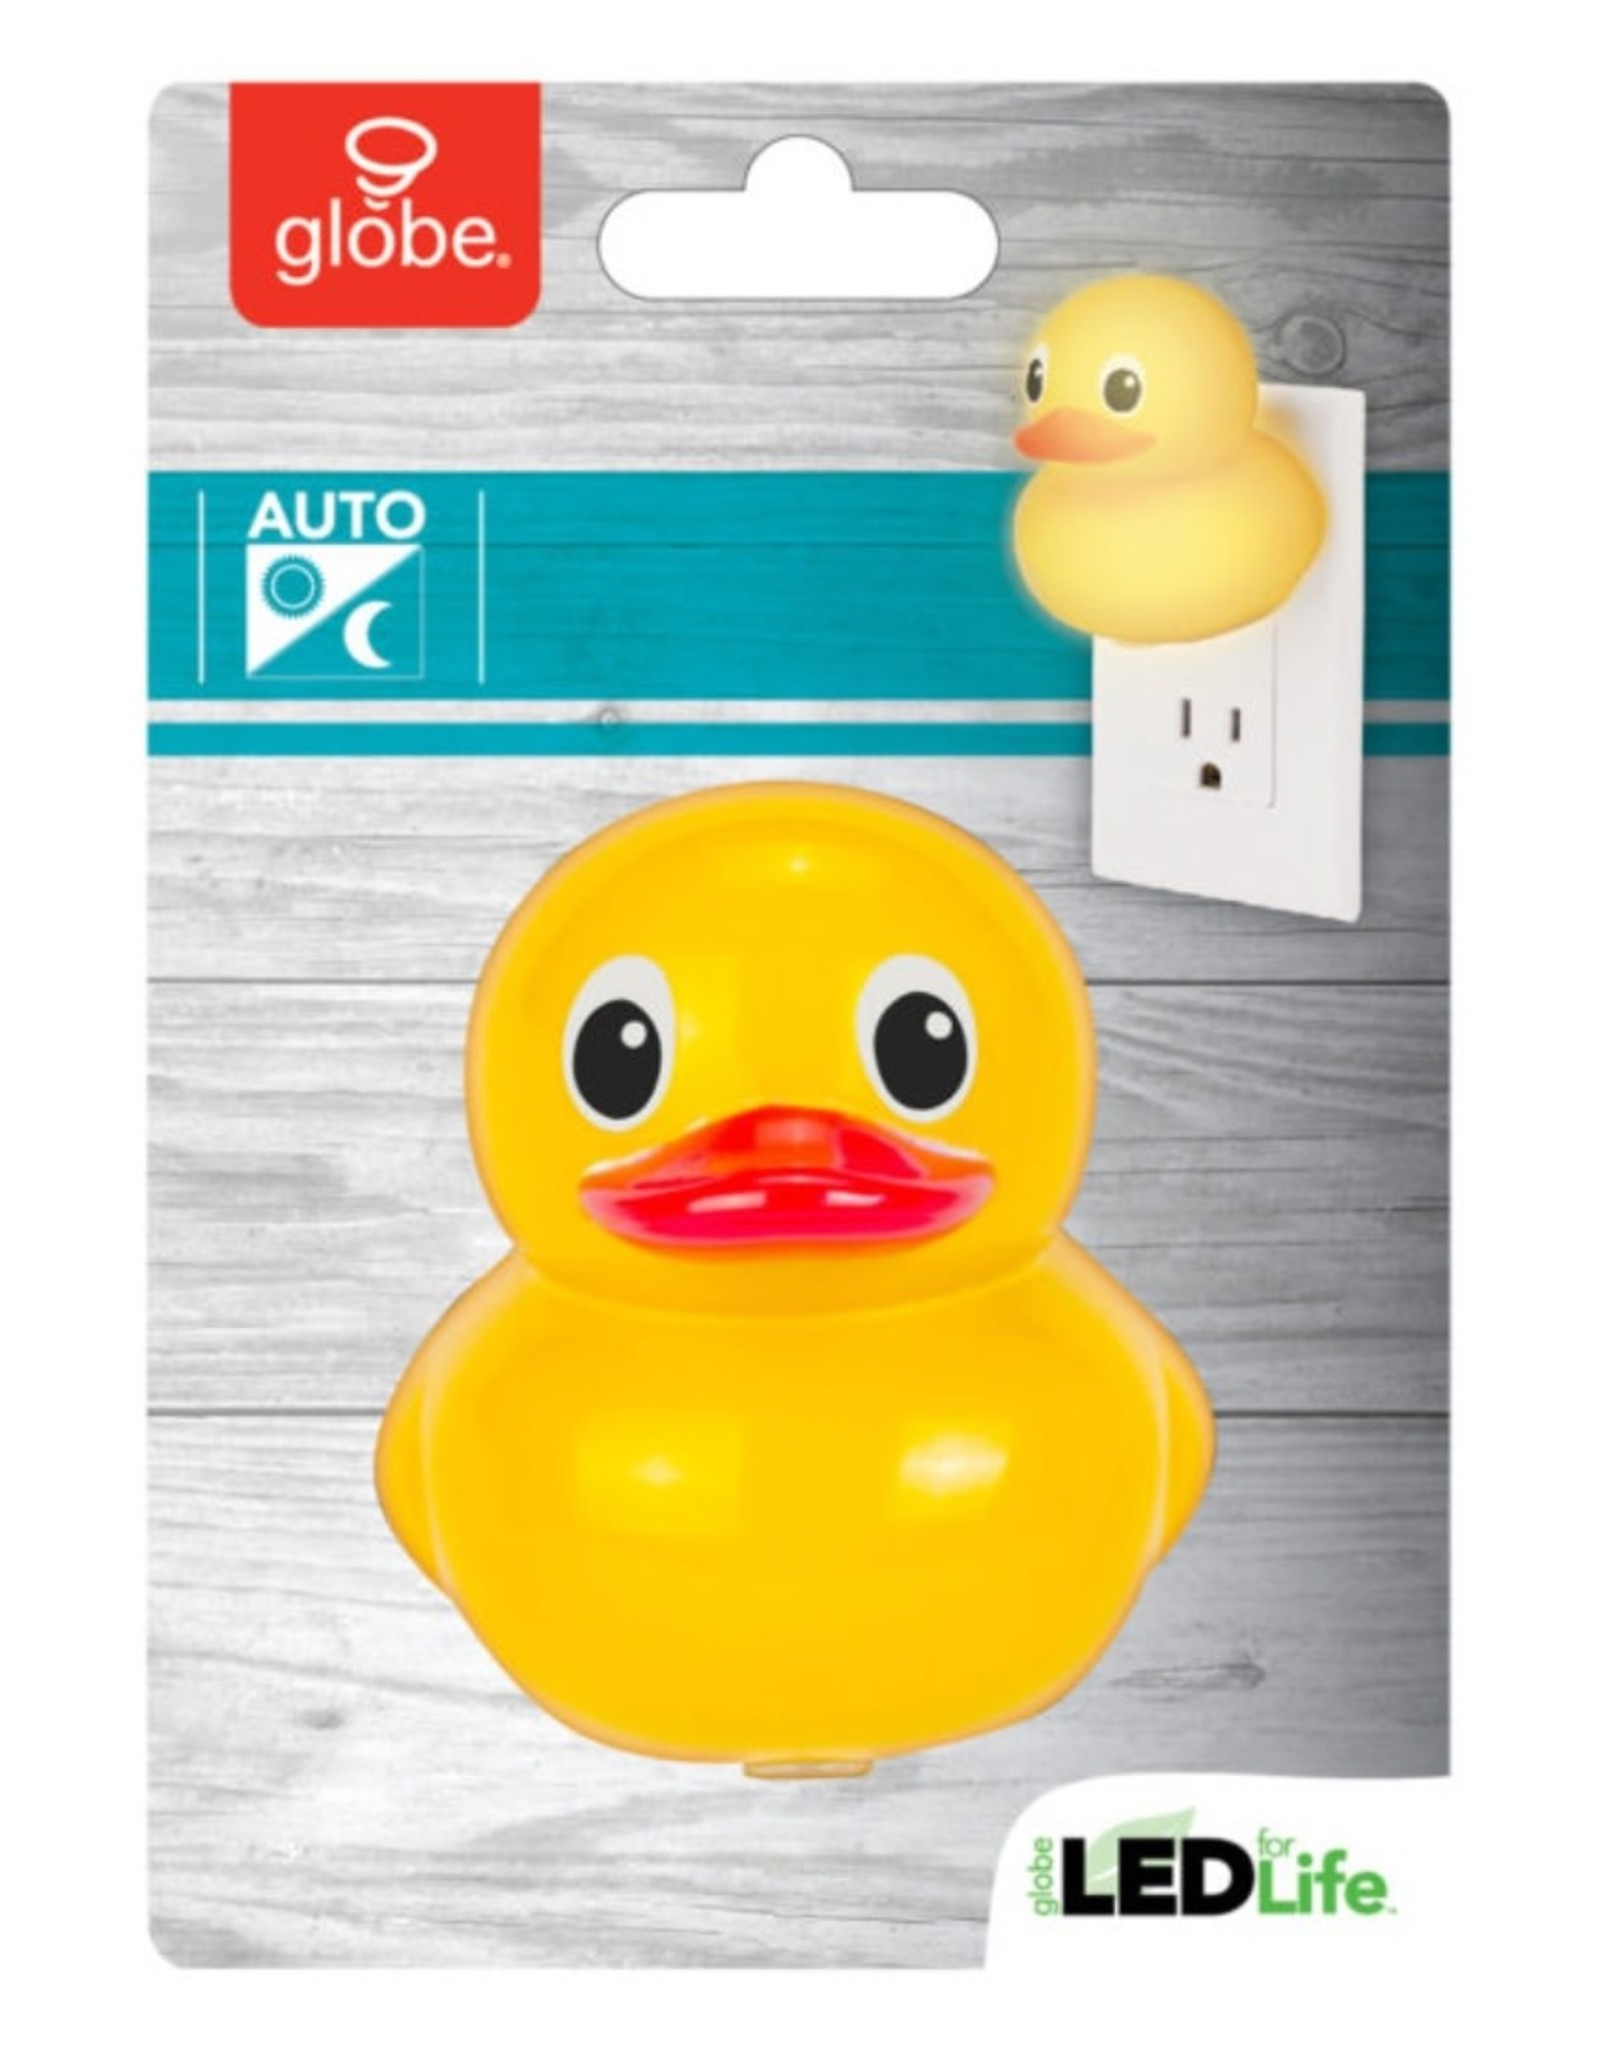 LED Automatic Rubber Duck Night Light